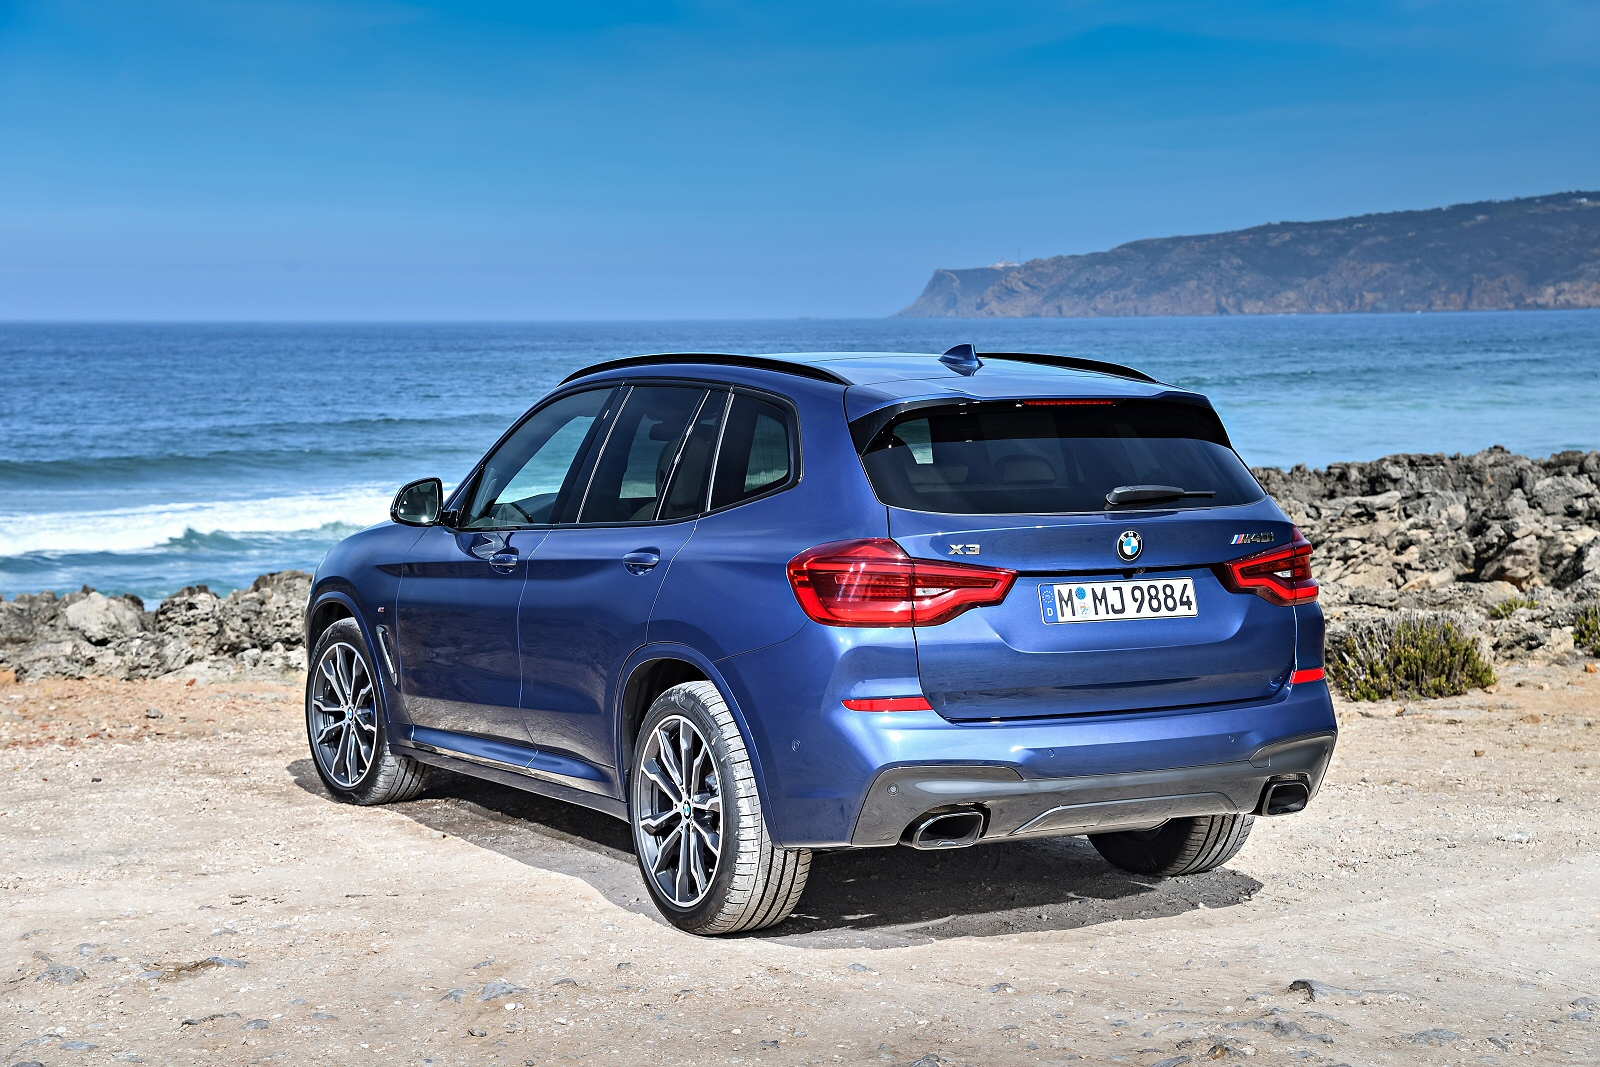 THREE MARKET ECONOMY' - BMW X3 Range Independent New Review